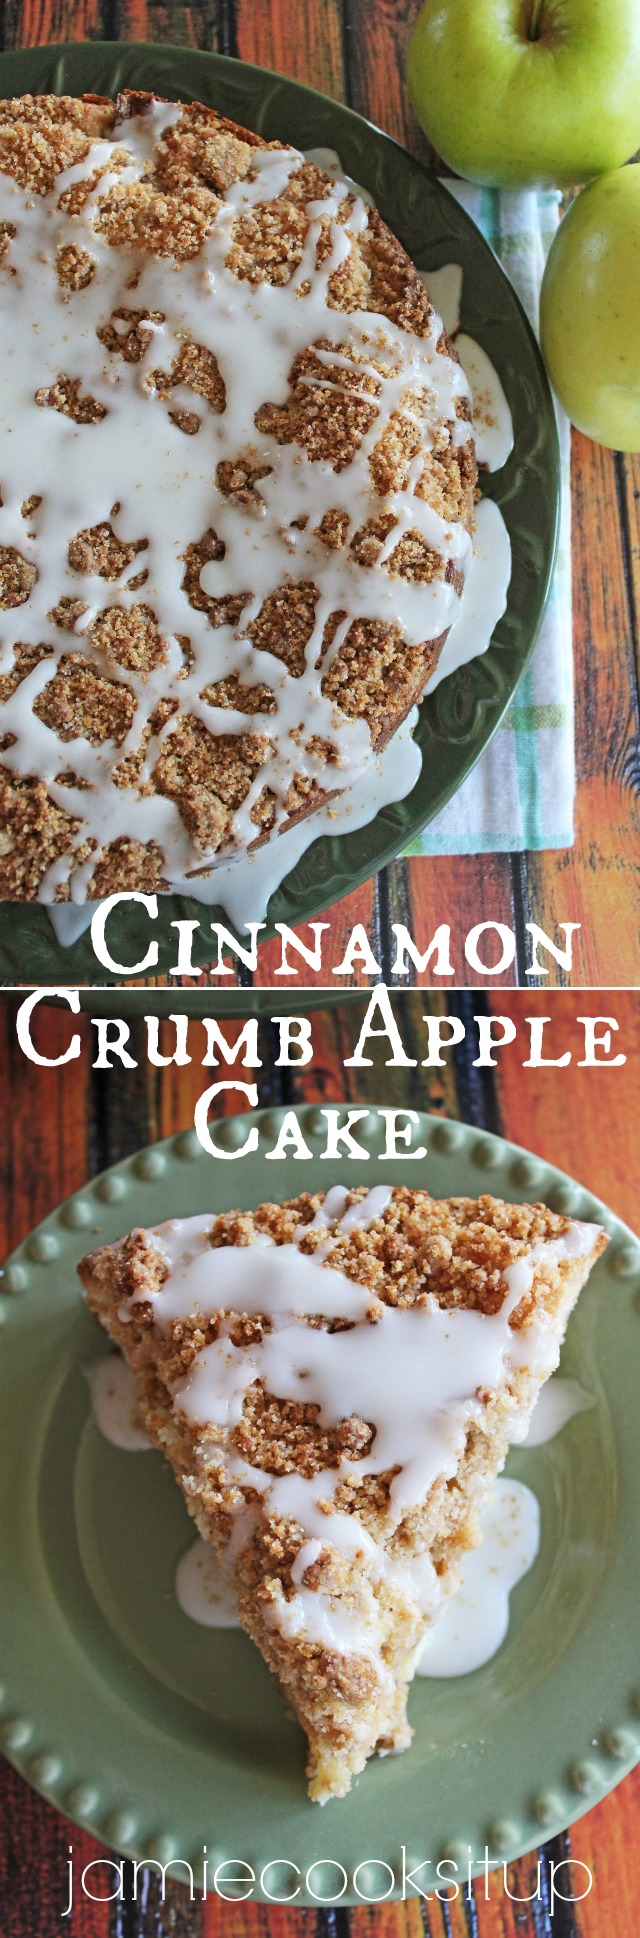 cinnamon-crumb-apple-cake-from-jamie-cooks-it-up